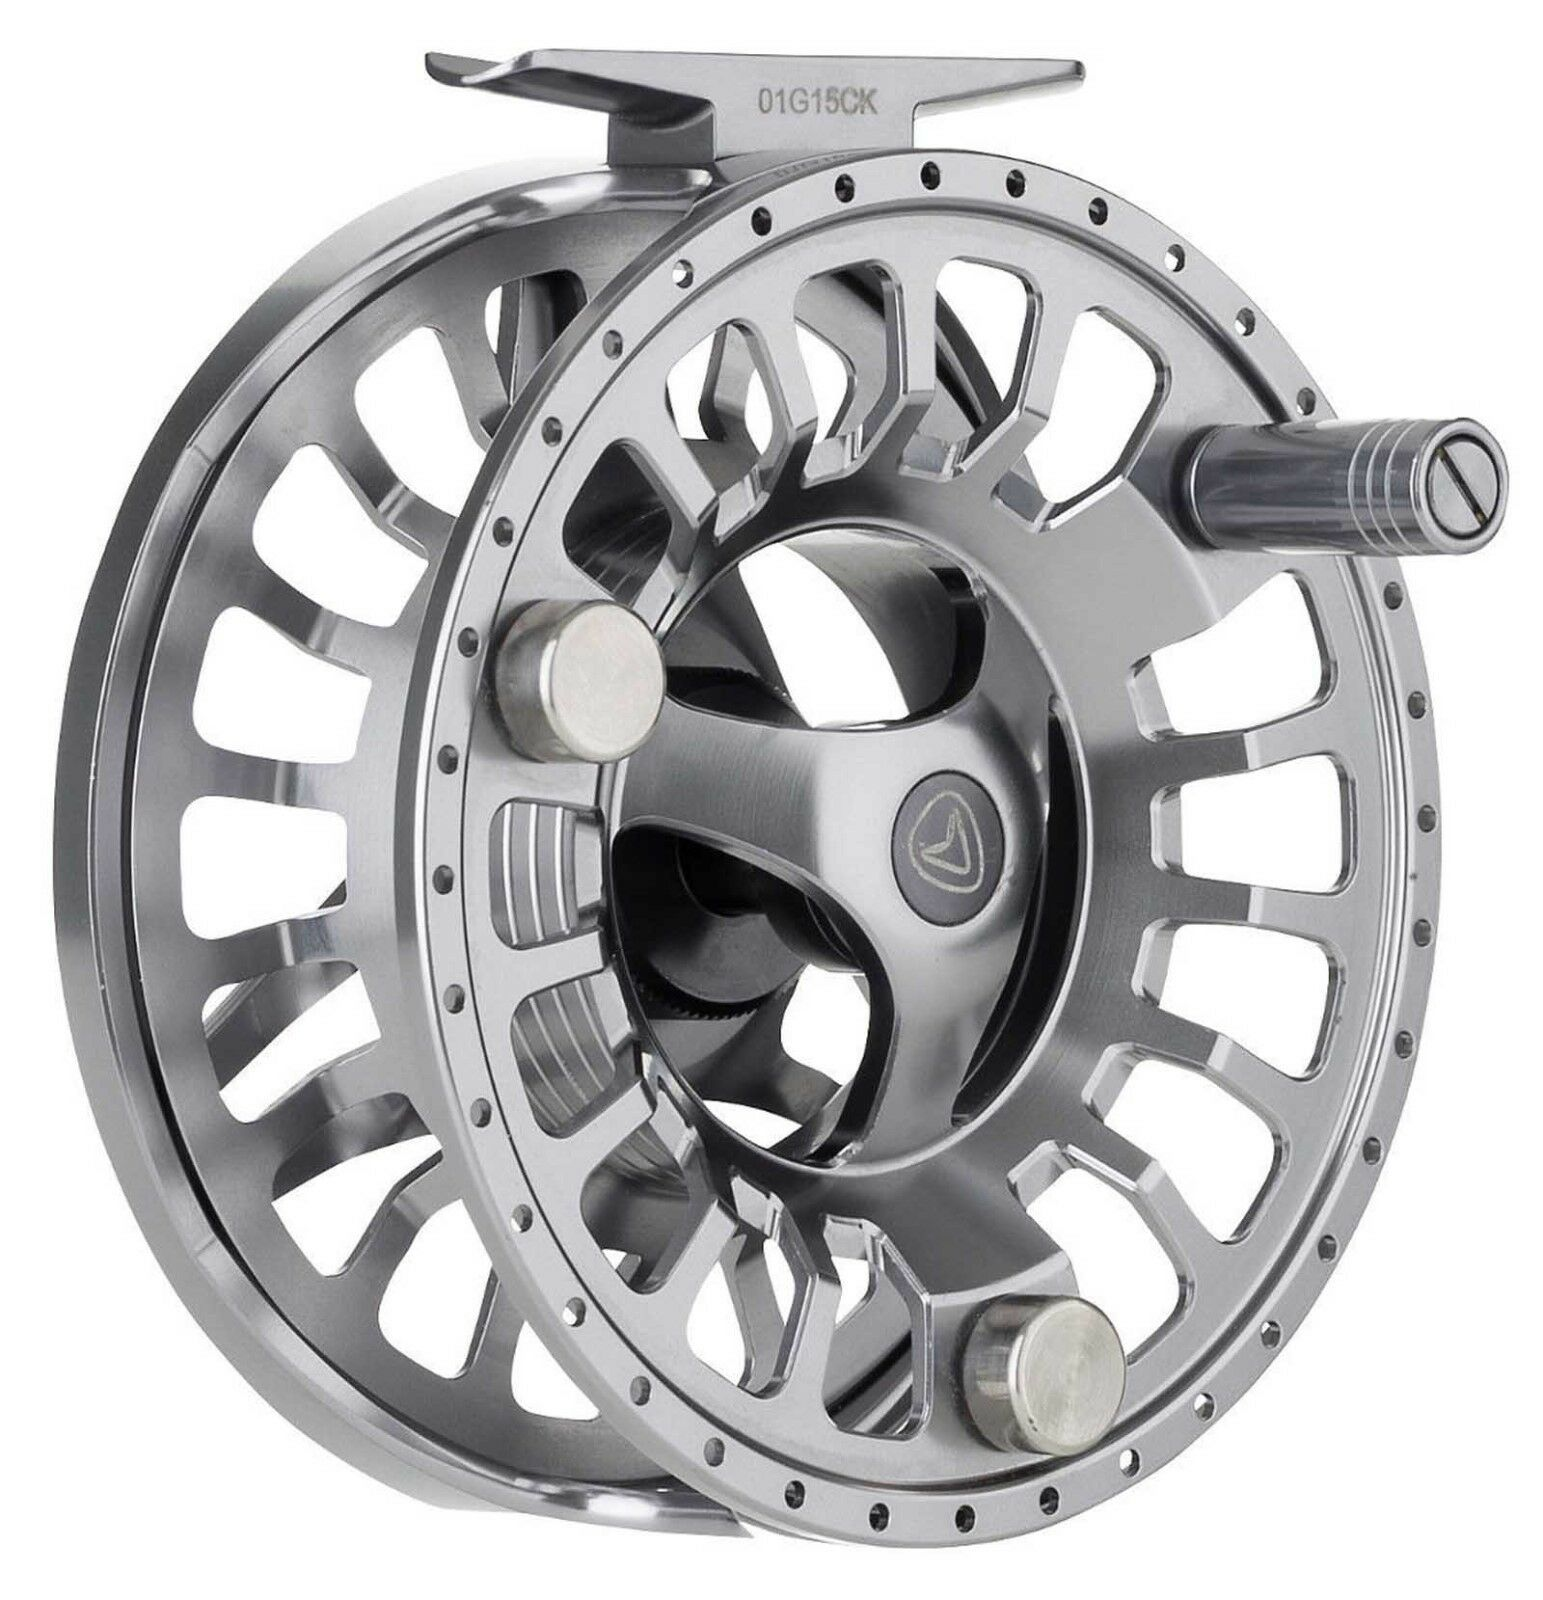 Graus New GTS900 Trout & Salmon Freshwater Fly Fishing Reels & Spare Spools